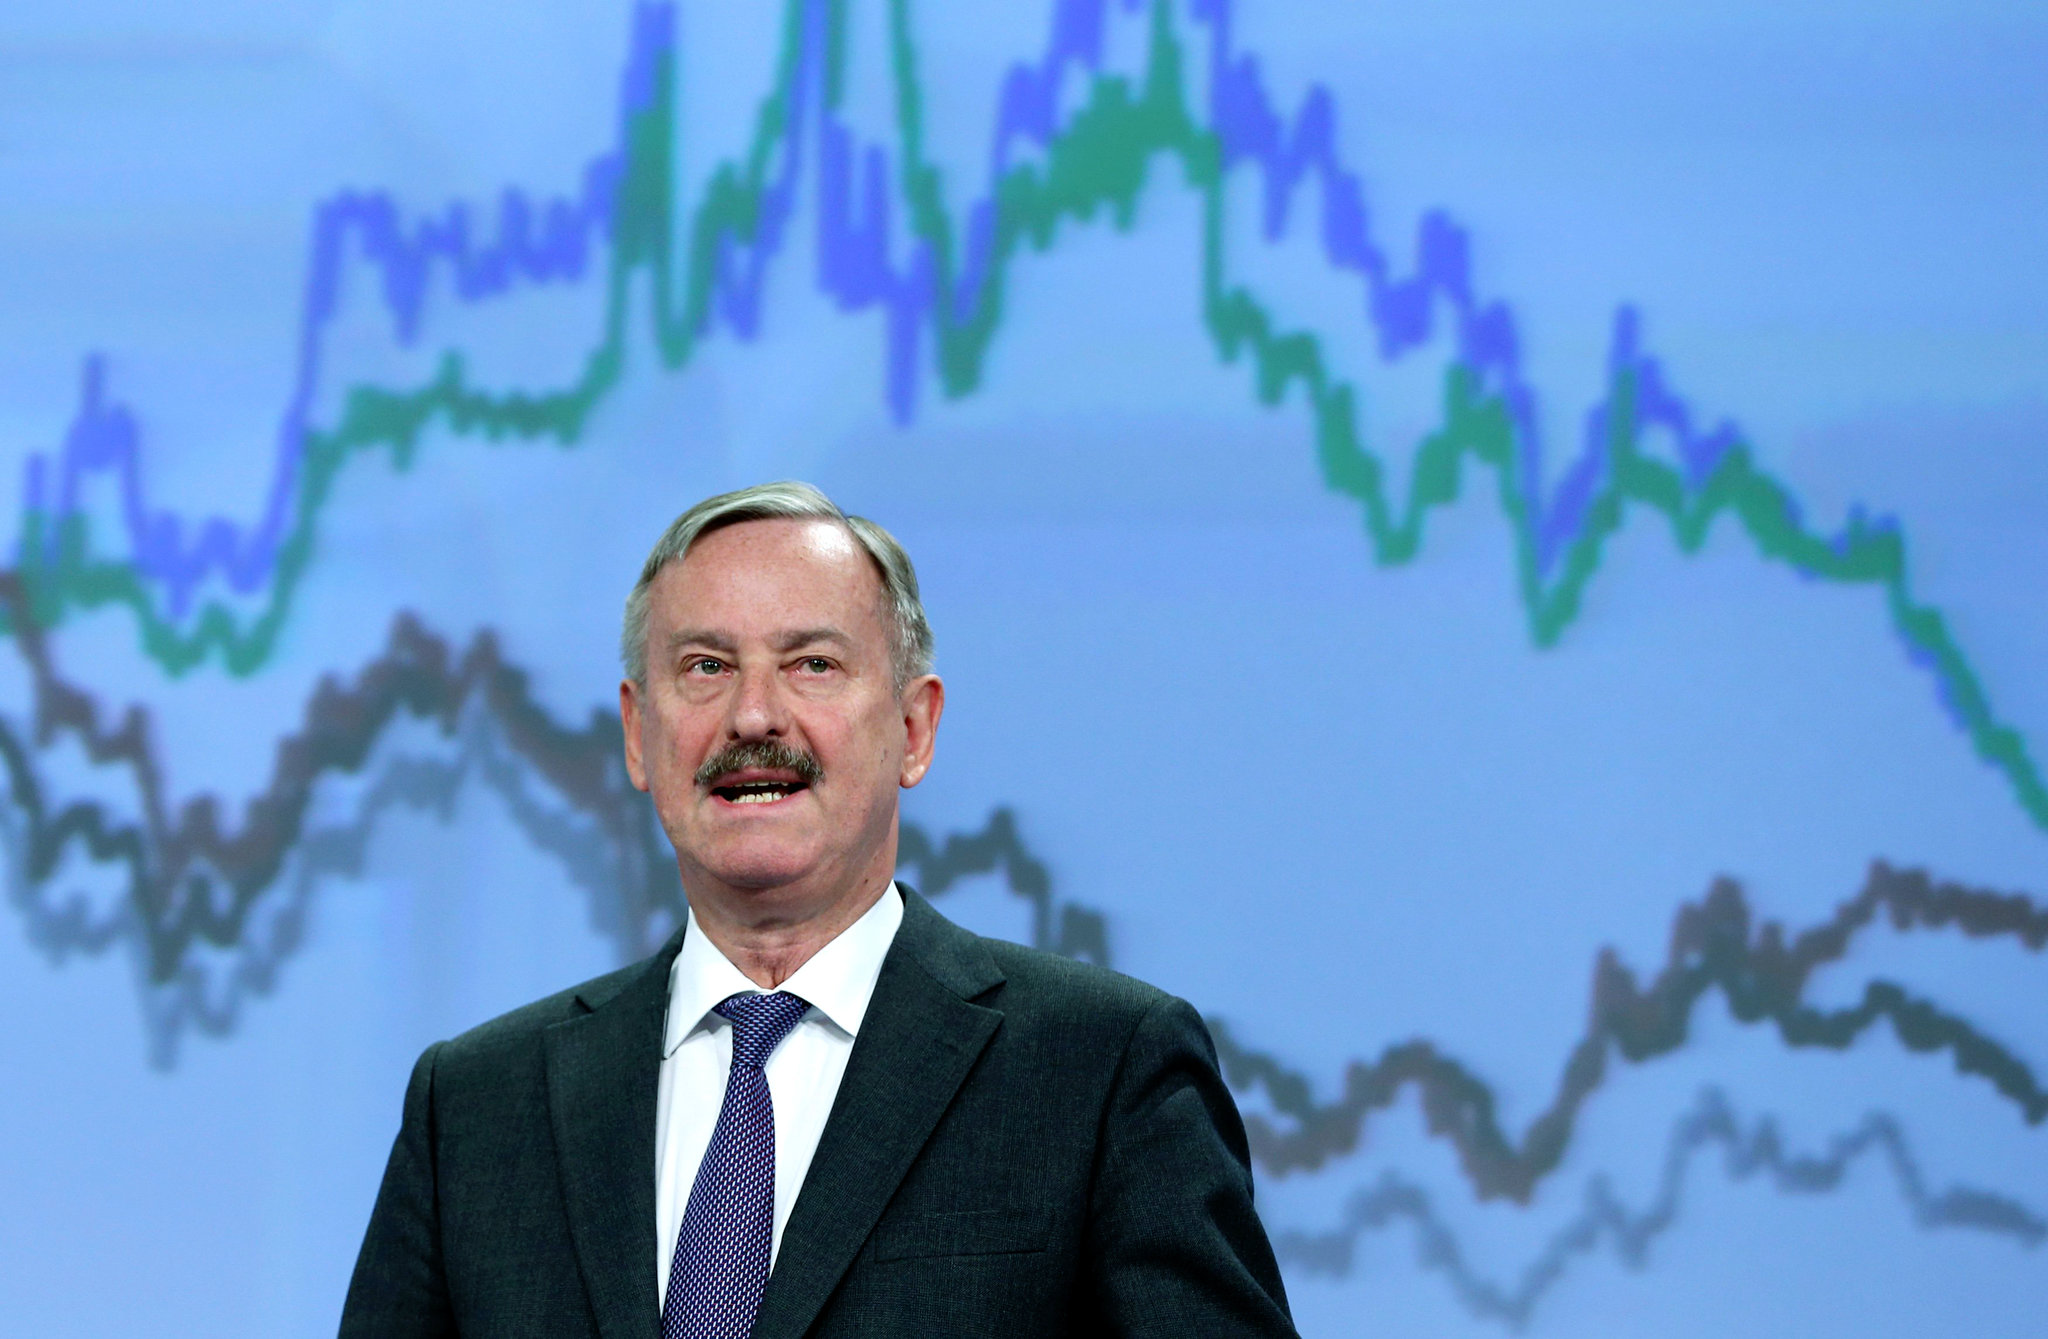 Siim Kallas, vice president of the European Commission, during a press conference in Brussels.|Francois Lenoir/Reuters